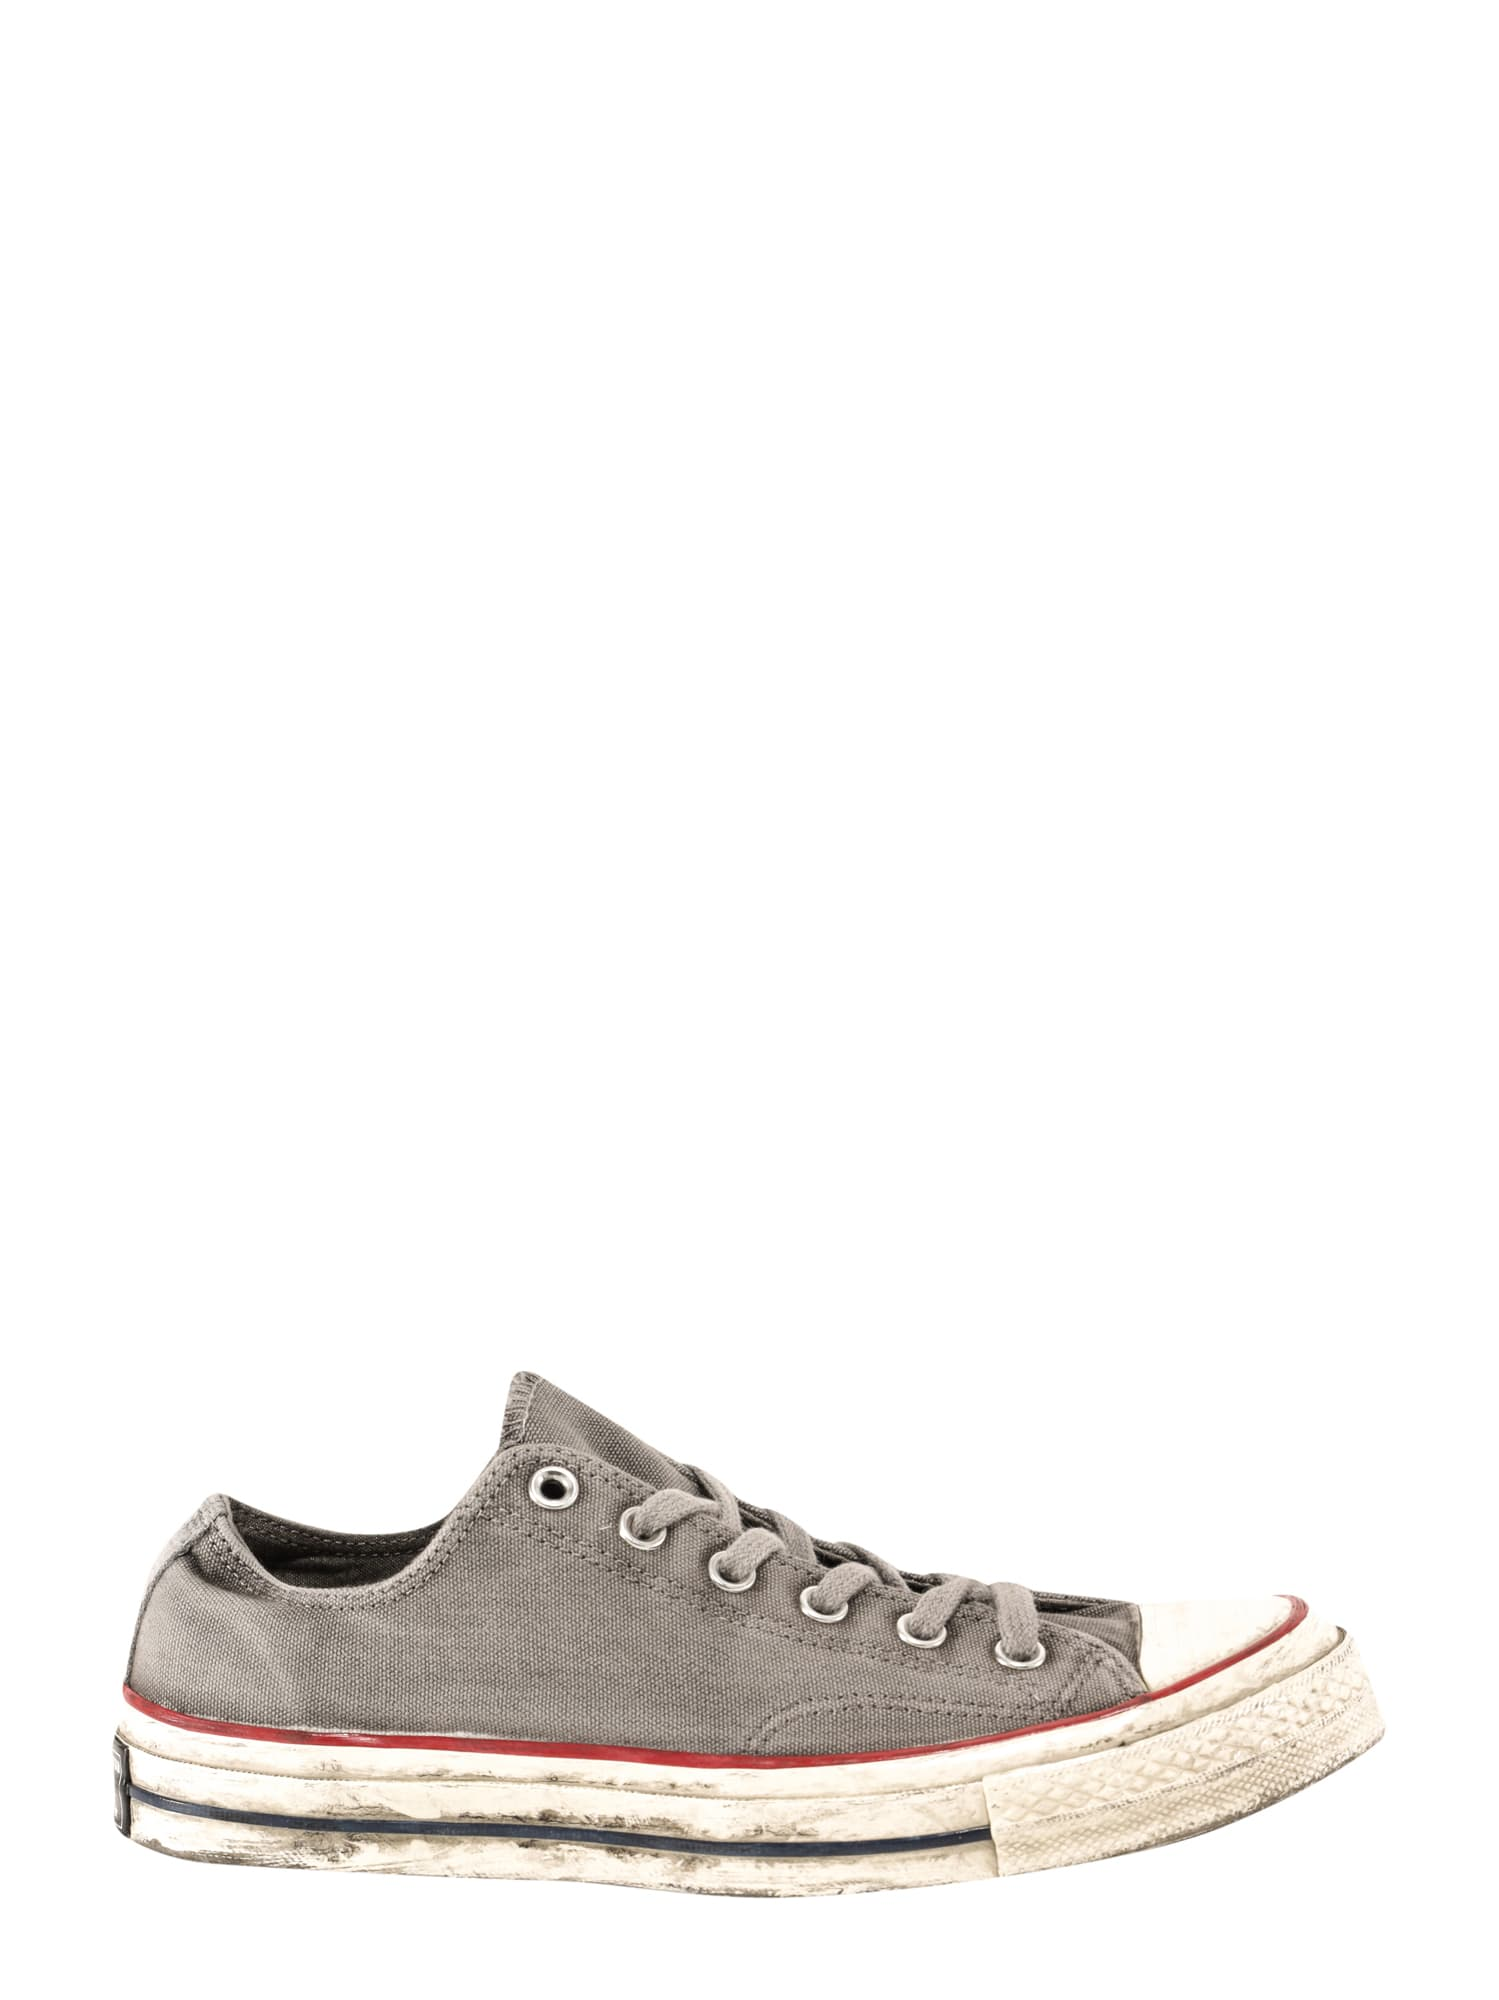 Converse Canvases SNEAKERS